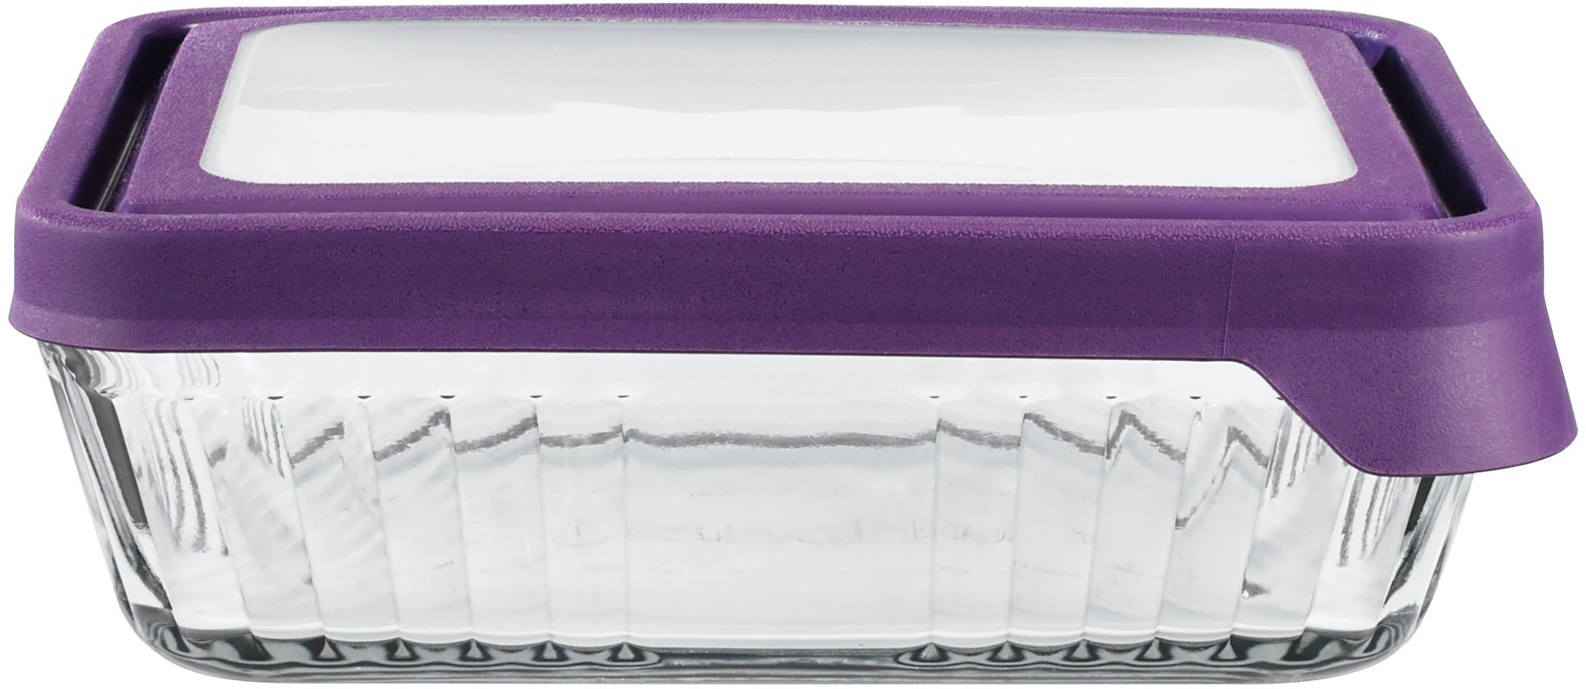 Anchor Hocking Rectangular Storage Container with Eggplant TrueSeal Lid, 11 Cup